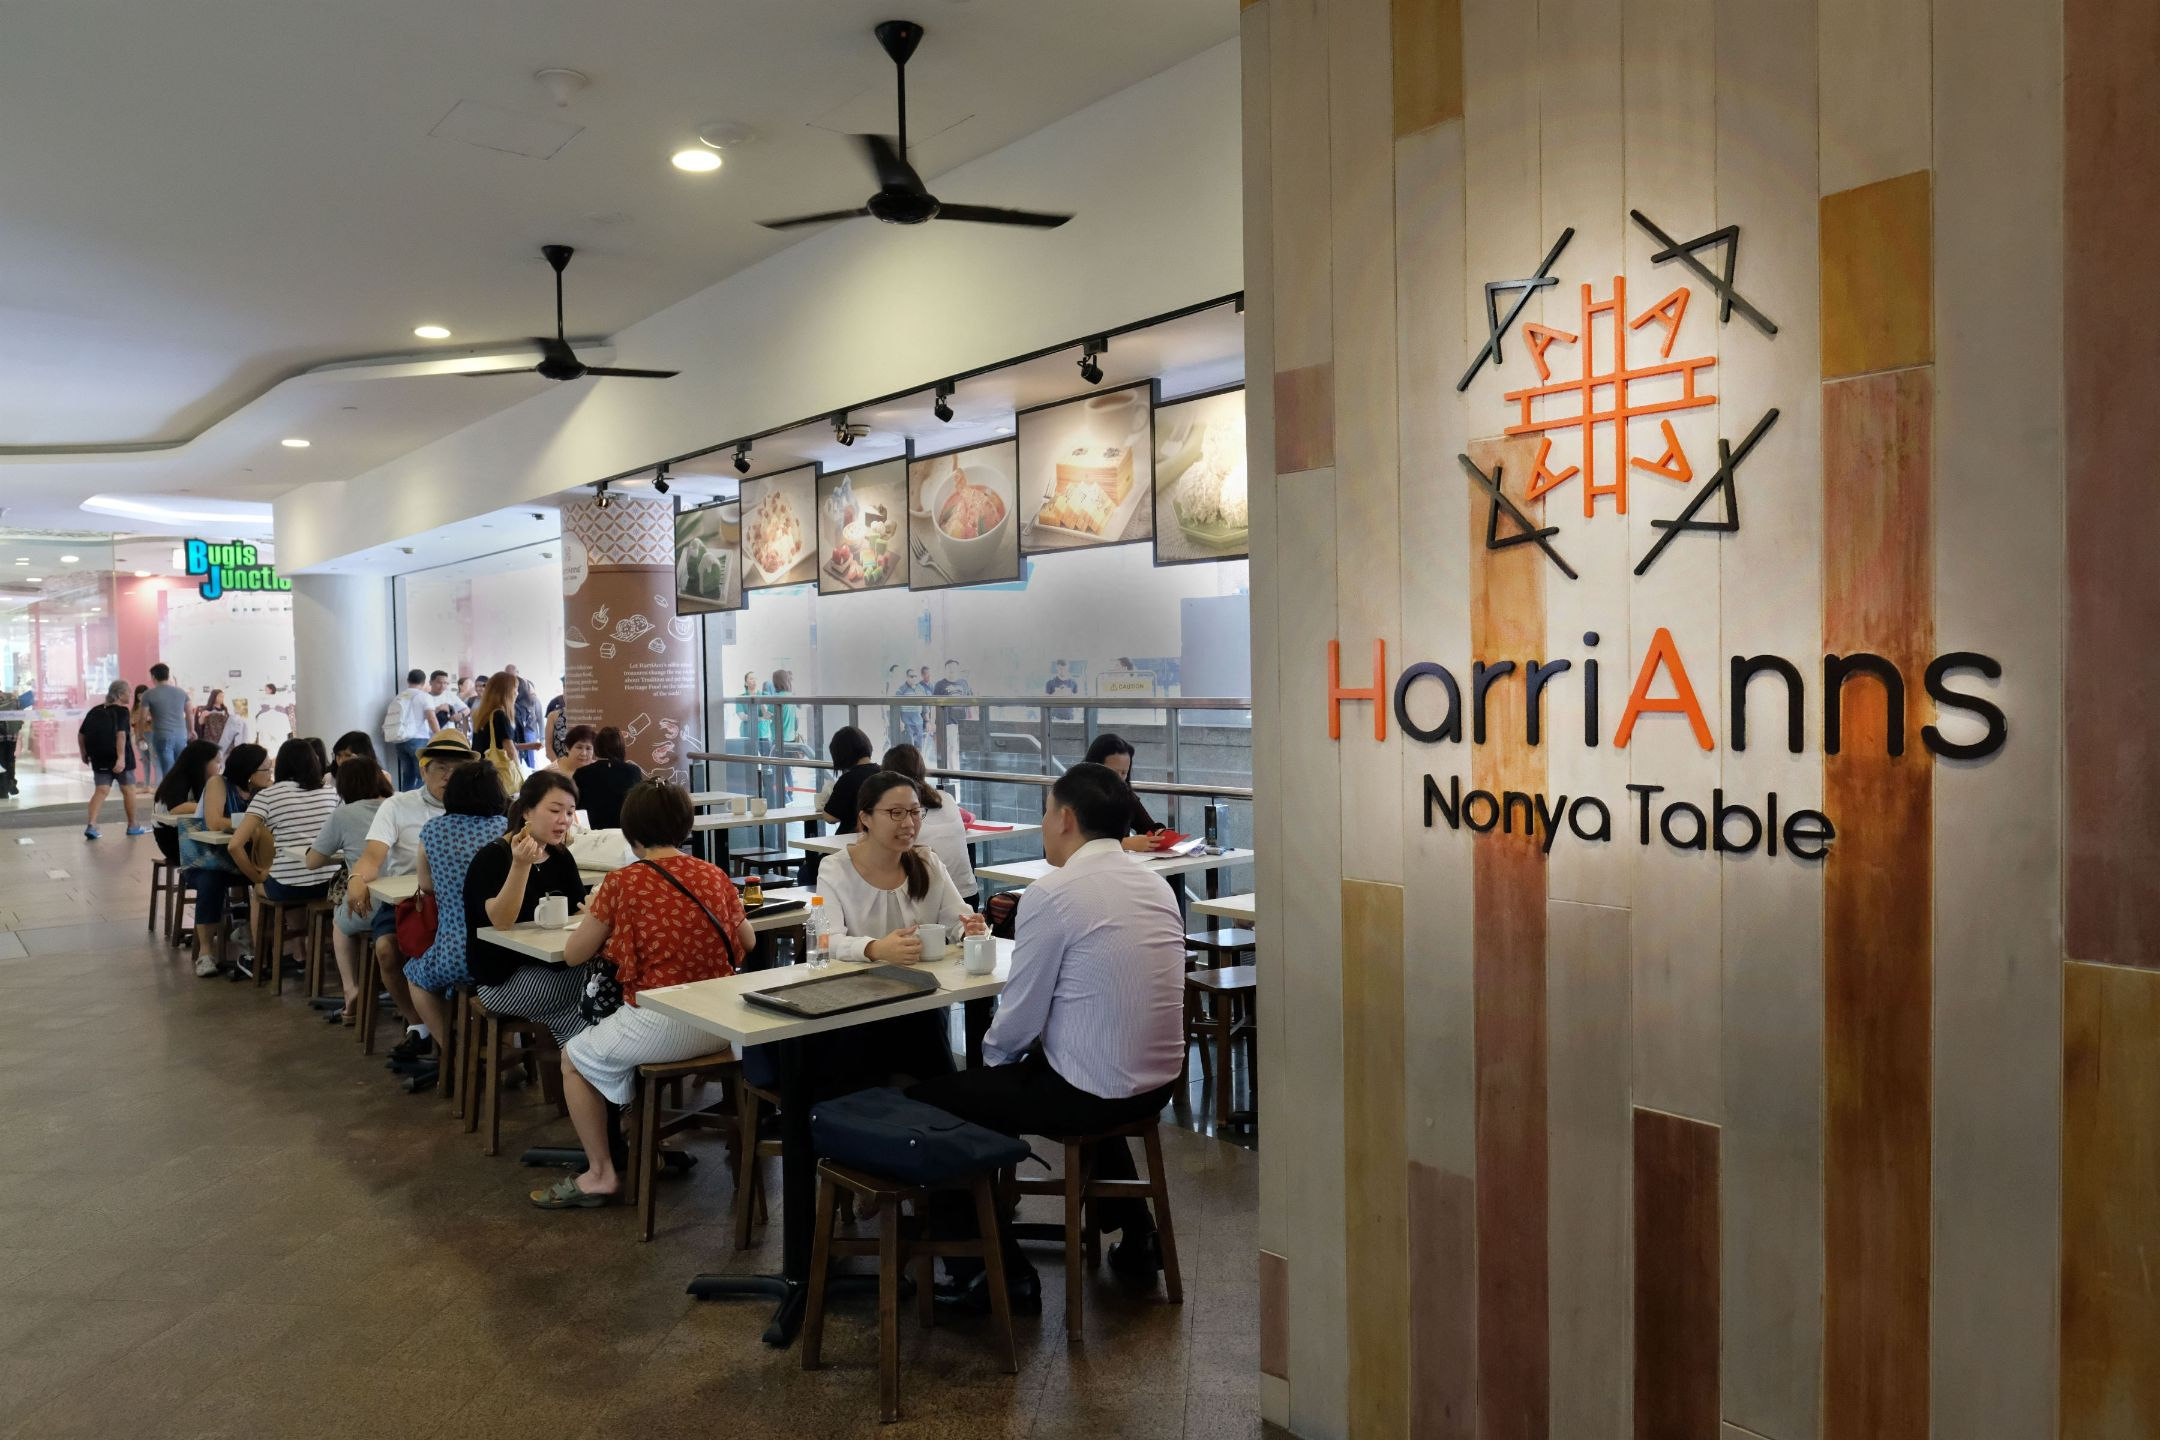 HARRIANNS NONYA TABLE